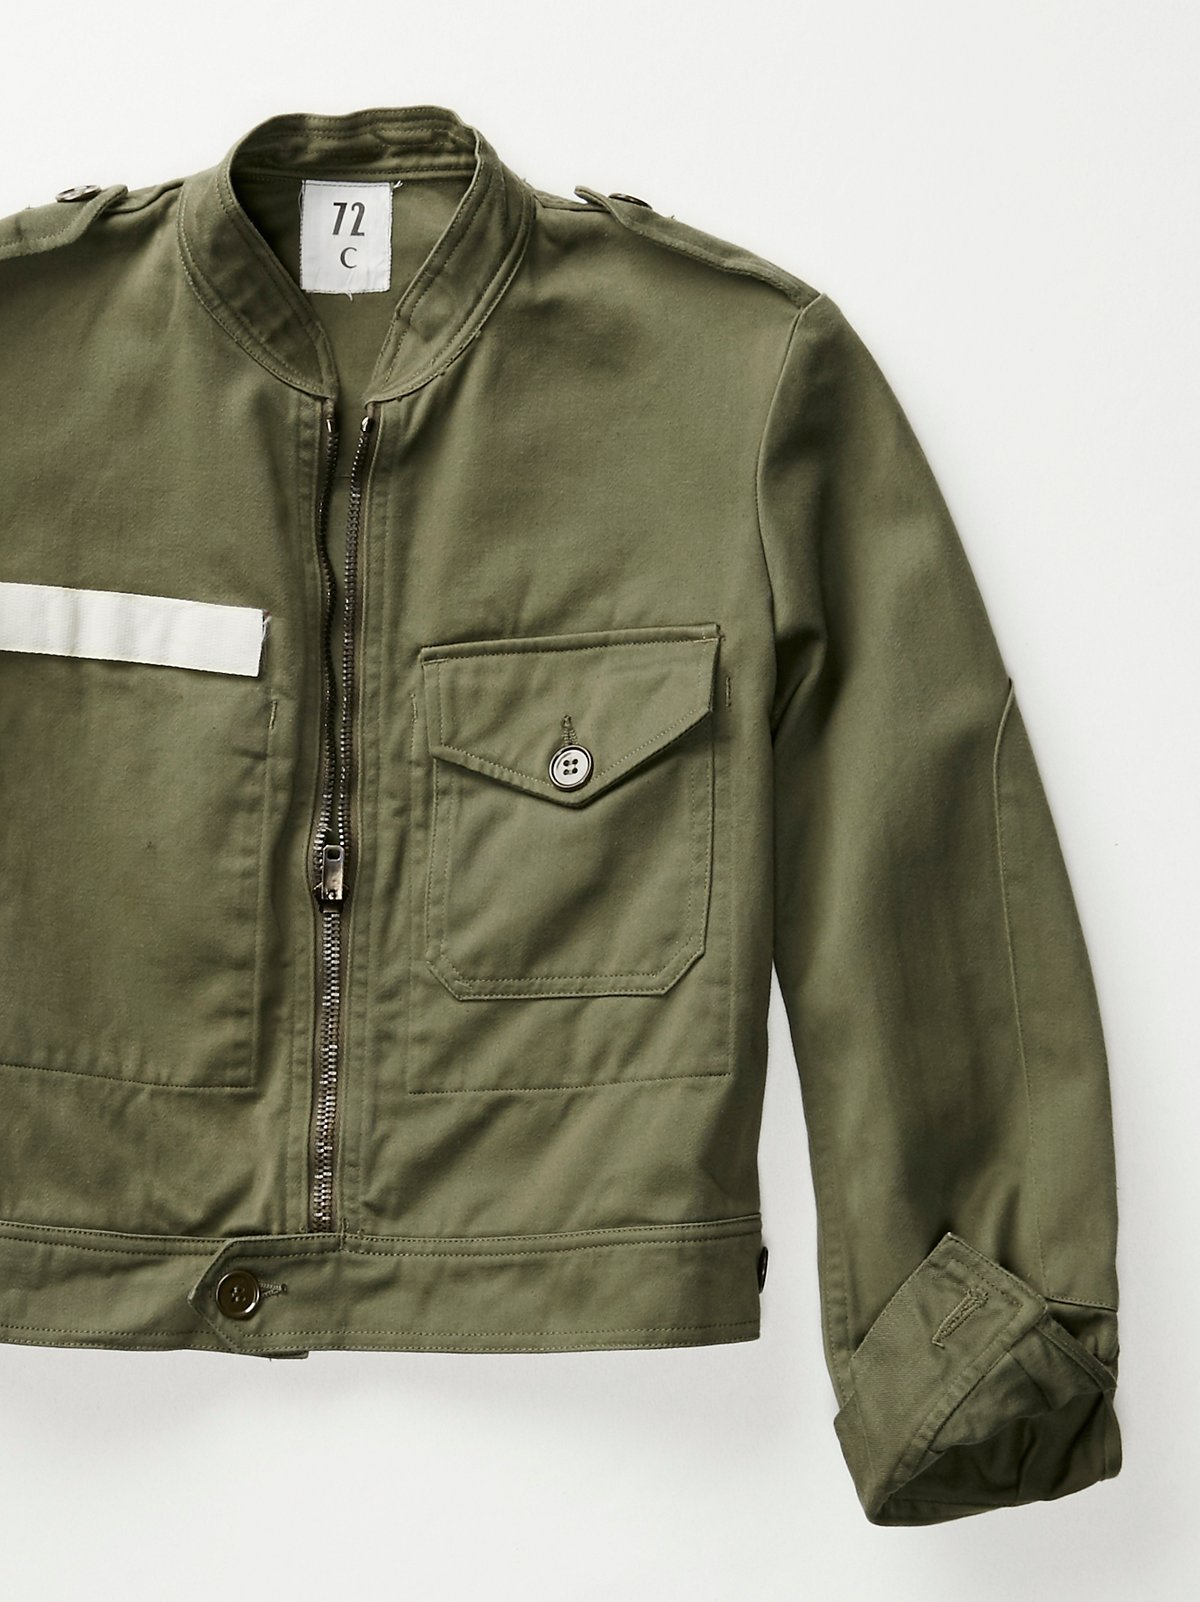 Vintage 1970s Foreign Military Jacket